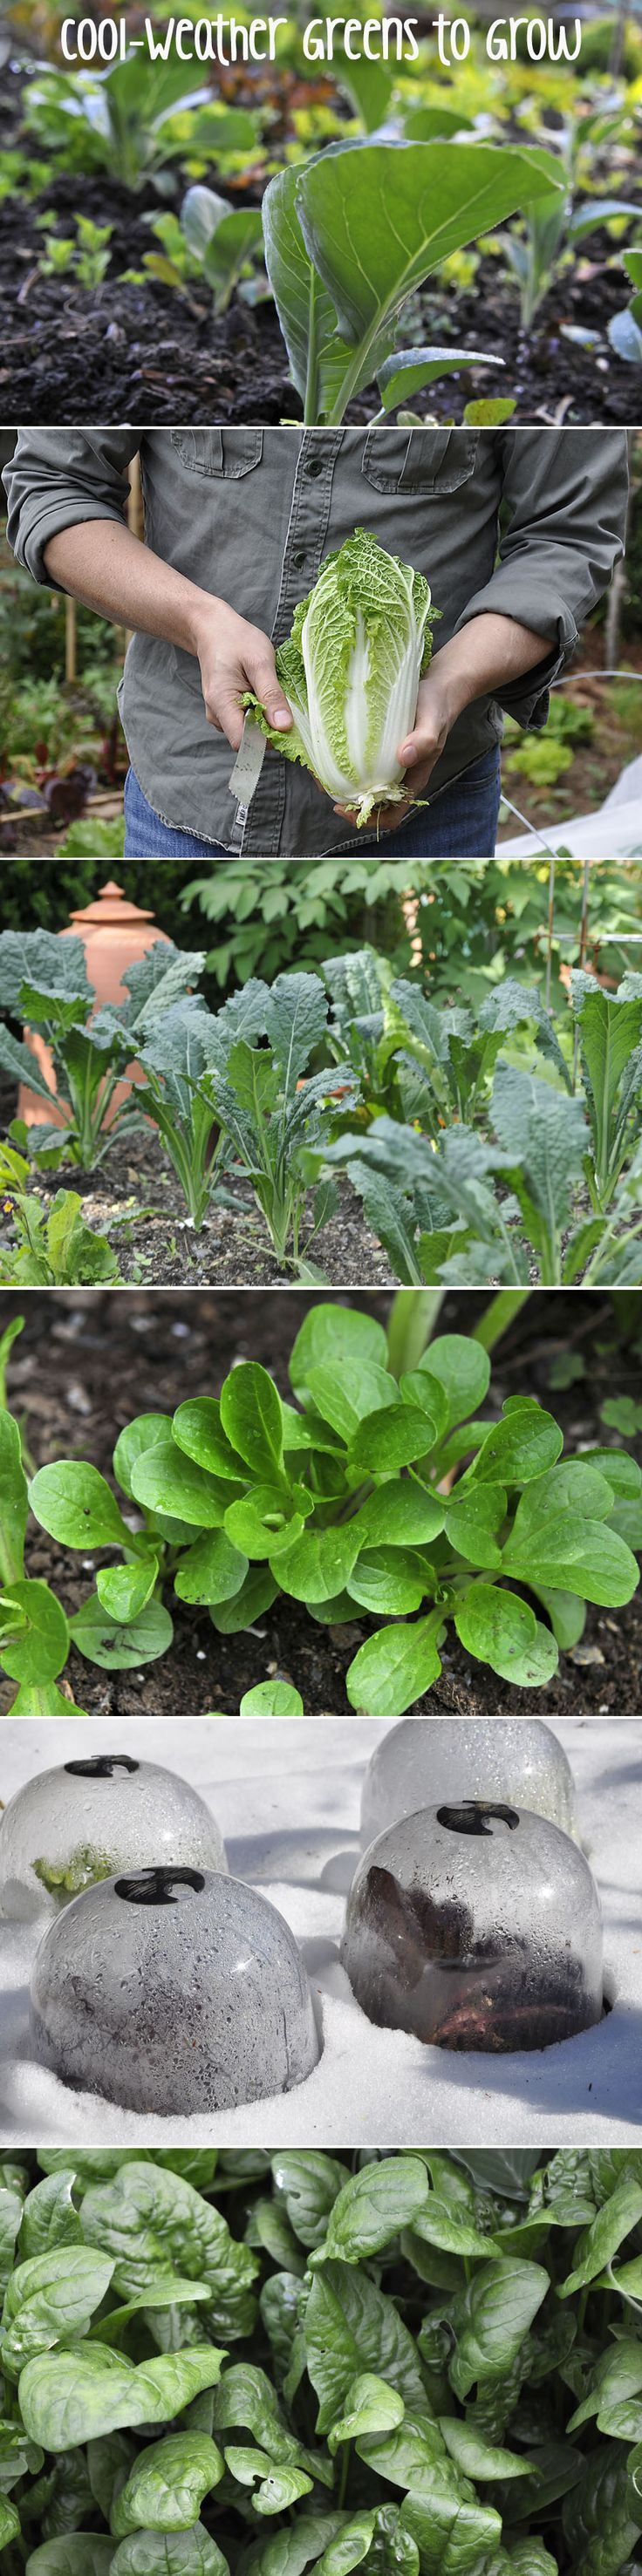 Marvelous  Images About Winter Crops On Pinterest With Likable Paradise Gardens Besides Paving Ideas For Gardens Furthermore William Blake The Garden Of Love With Easy On The Eye Garden Loungers Tesco Also Garden Fence Posts In Addition Garden Clogs And Garden Magazine Subscription As Well As Sensory Gardens For Schools Additionally Solar Lights For Garden Fence From Pinterestcom With   Likable  Images About Winter Crops On Pinterest With Easy On The Eye Paradise Gardens Besides Paving Ideas For Gardens Furthermore William Blake The Garden Of Love And Marvelous Garden Loungers Tesco Also Garden Fence Posts In Addition Garden Clogs From Pinterestcom